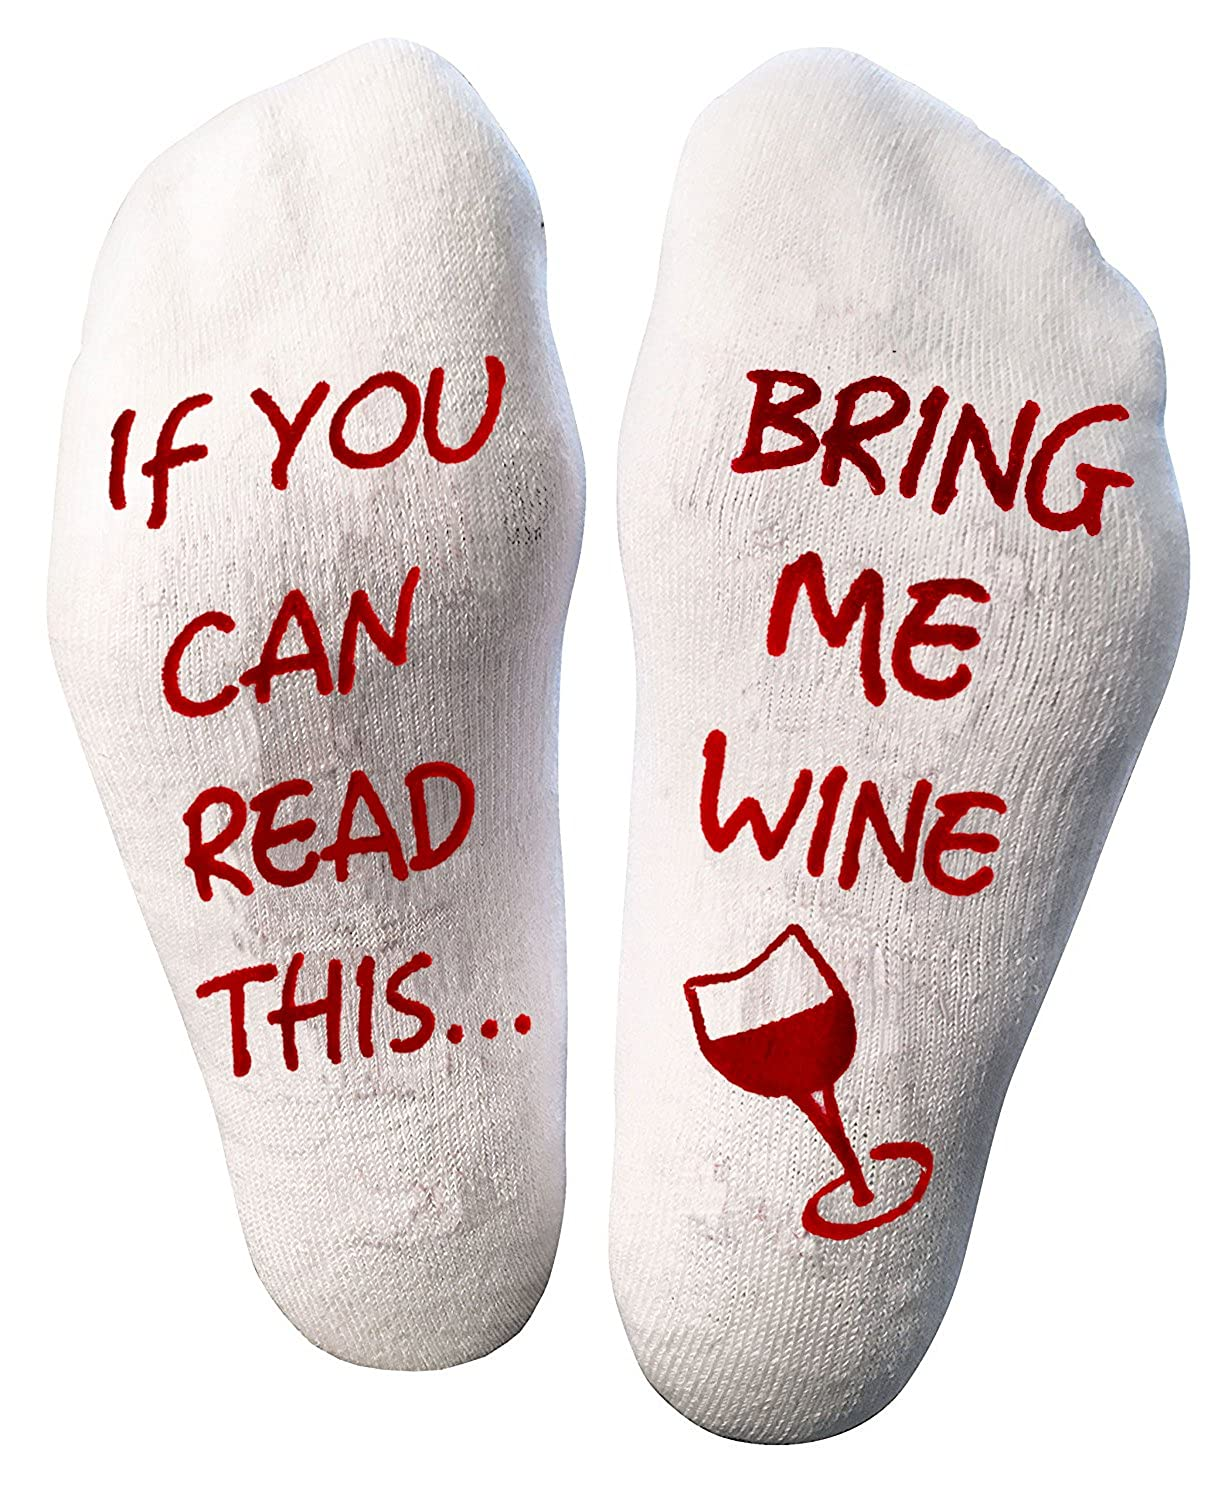 Atlecko Funny - Bring Me Wine Socks, MUST HAVE for 2018 - Thick Cotton, Washable - Perfect Christmas gifts for Women Birthday Present, House Warming, 50th Party Gift Idea (Mum, Grandma, Aunt, Wife)